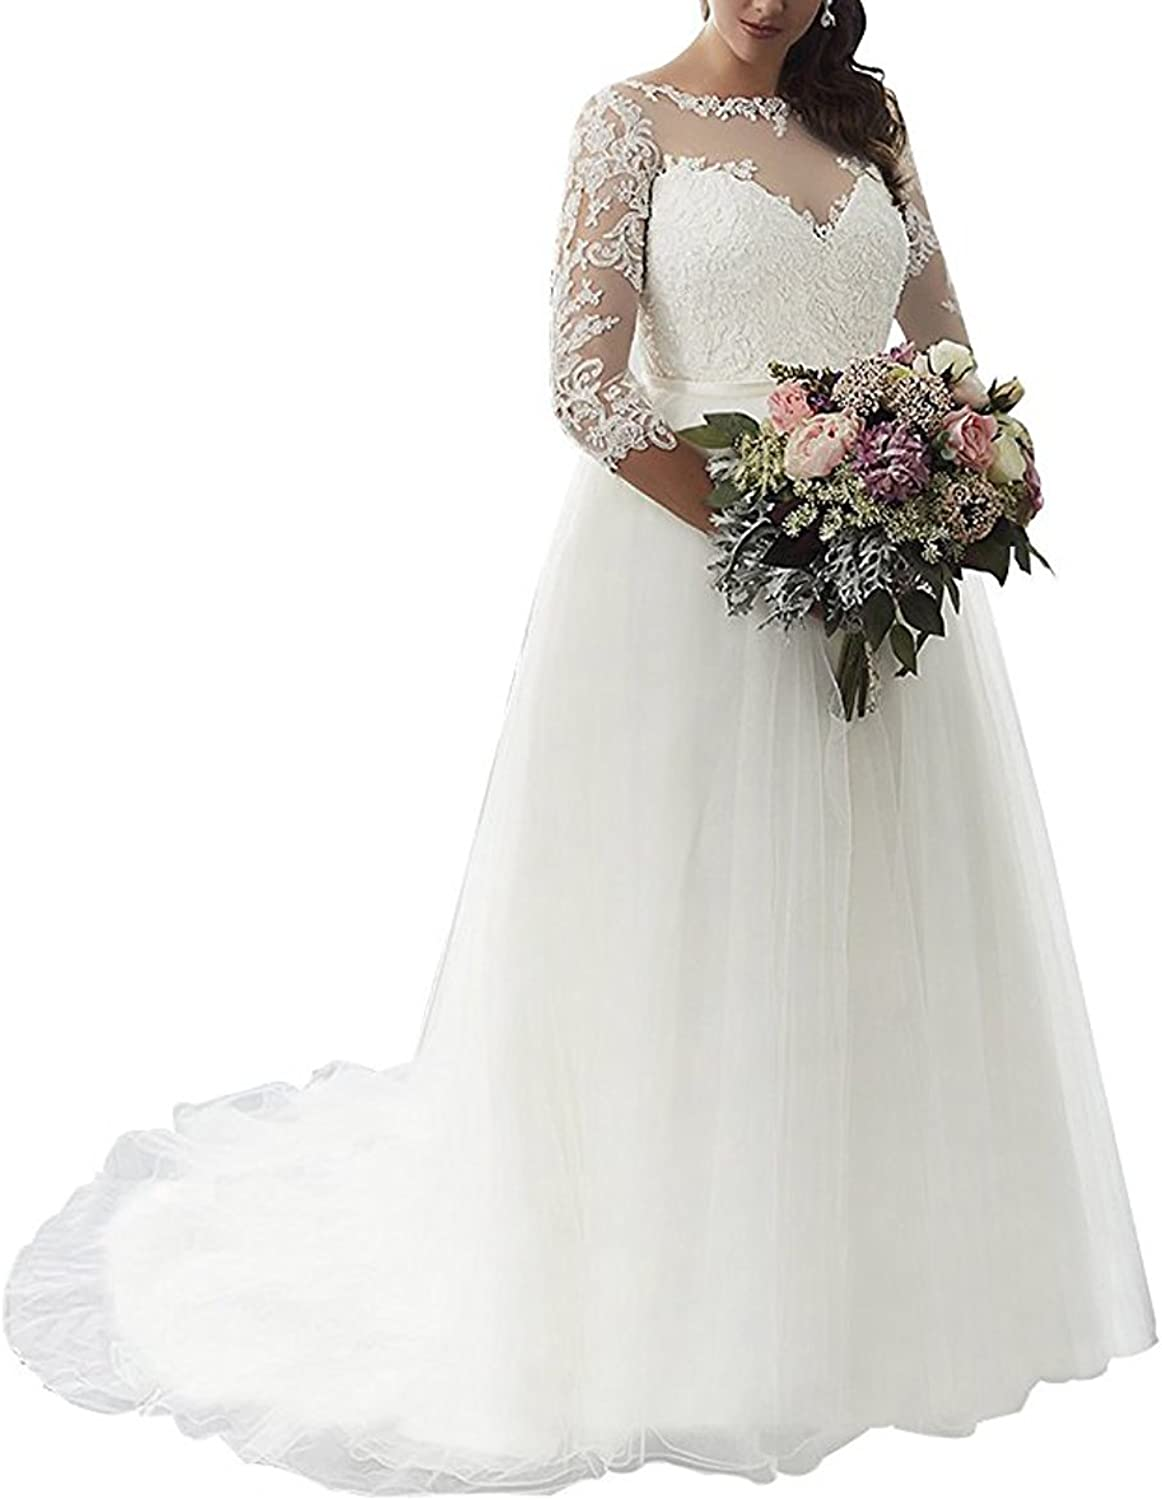 Beauty Bridal Women's Lace Applique Bride Gown with Three Quarter Sleeve Wedding Dresses L059